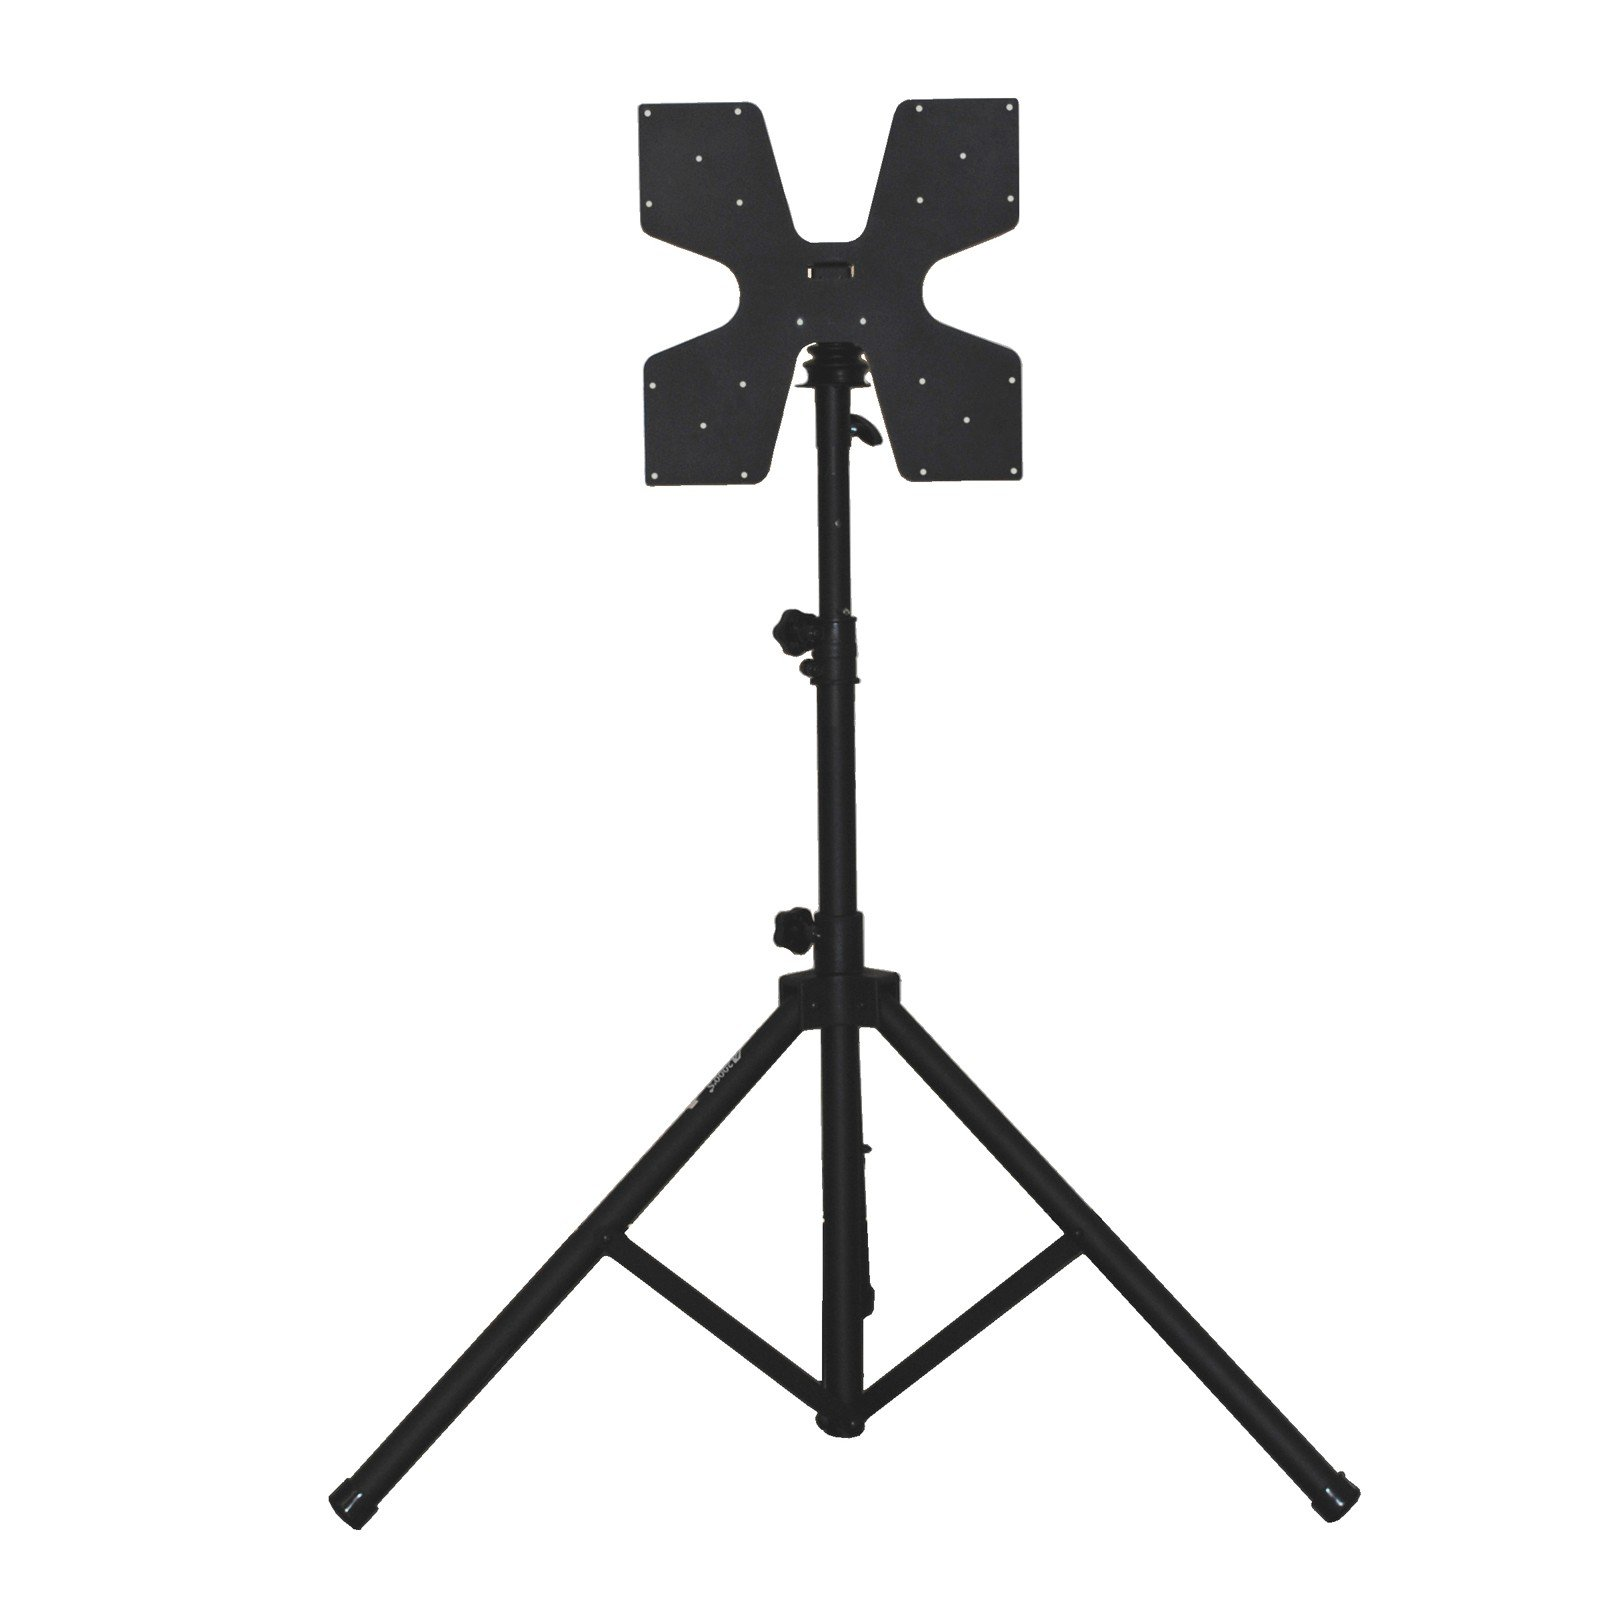 Audio 2000 AST424Y Portable Flat Panel LCD TV Stand with Foldable Tripod Legs by Audio 2000S